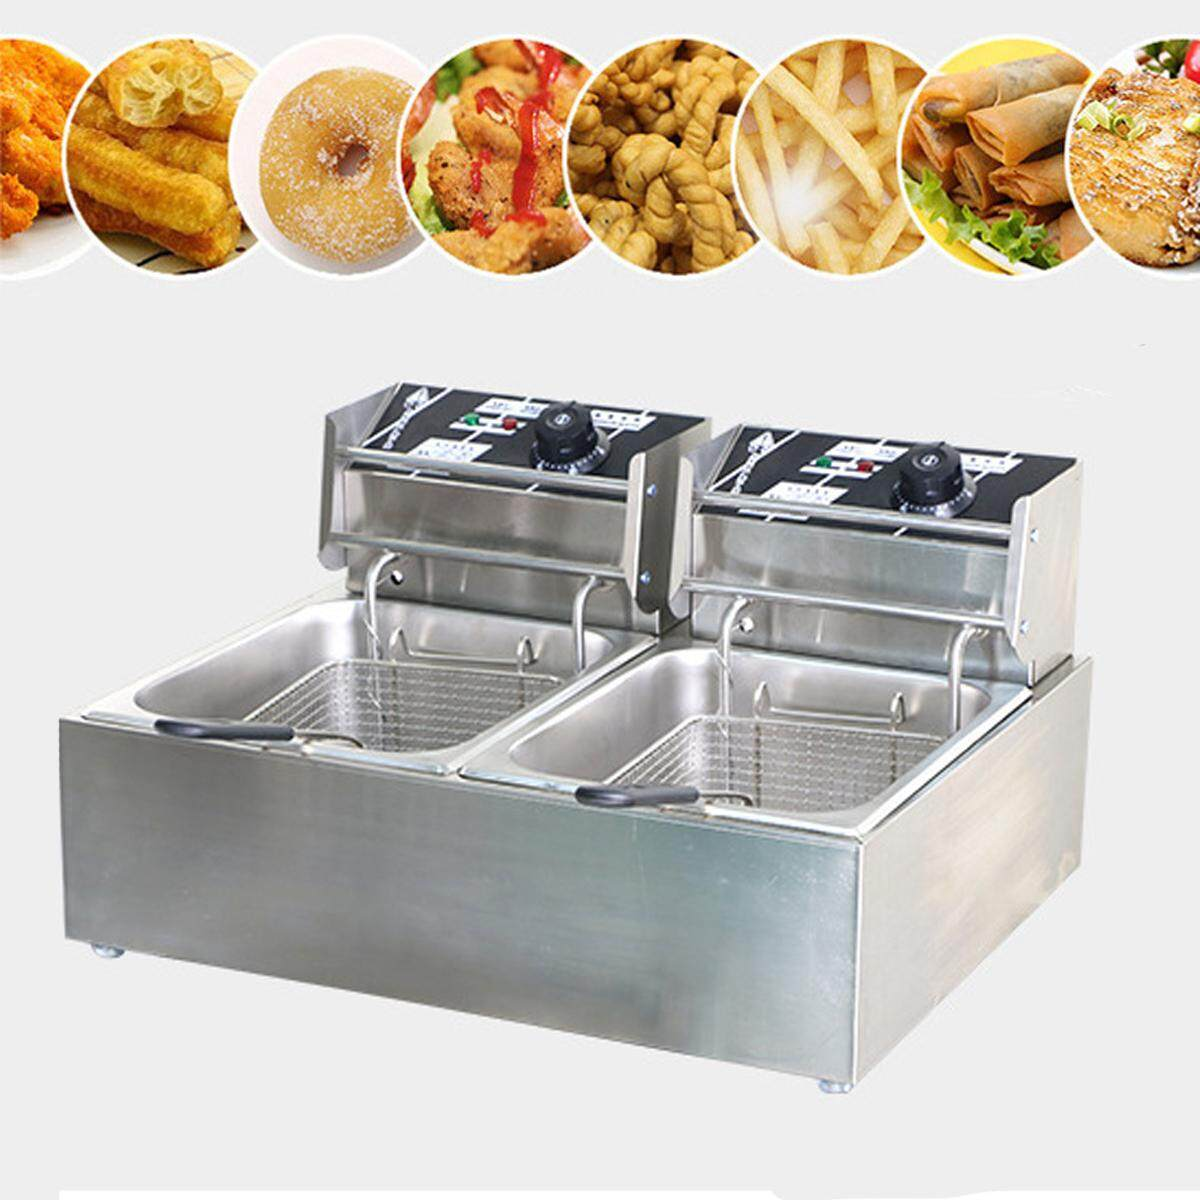 Chef Electric Commercial Deep Fryer Twin Frying Basket Chip Cooker 5000w By Glimmer.